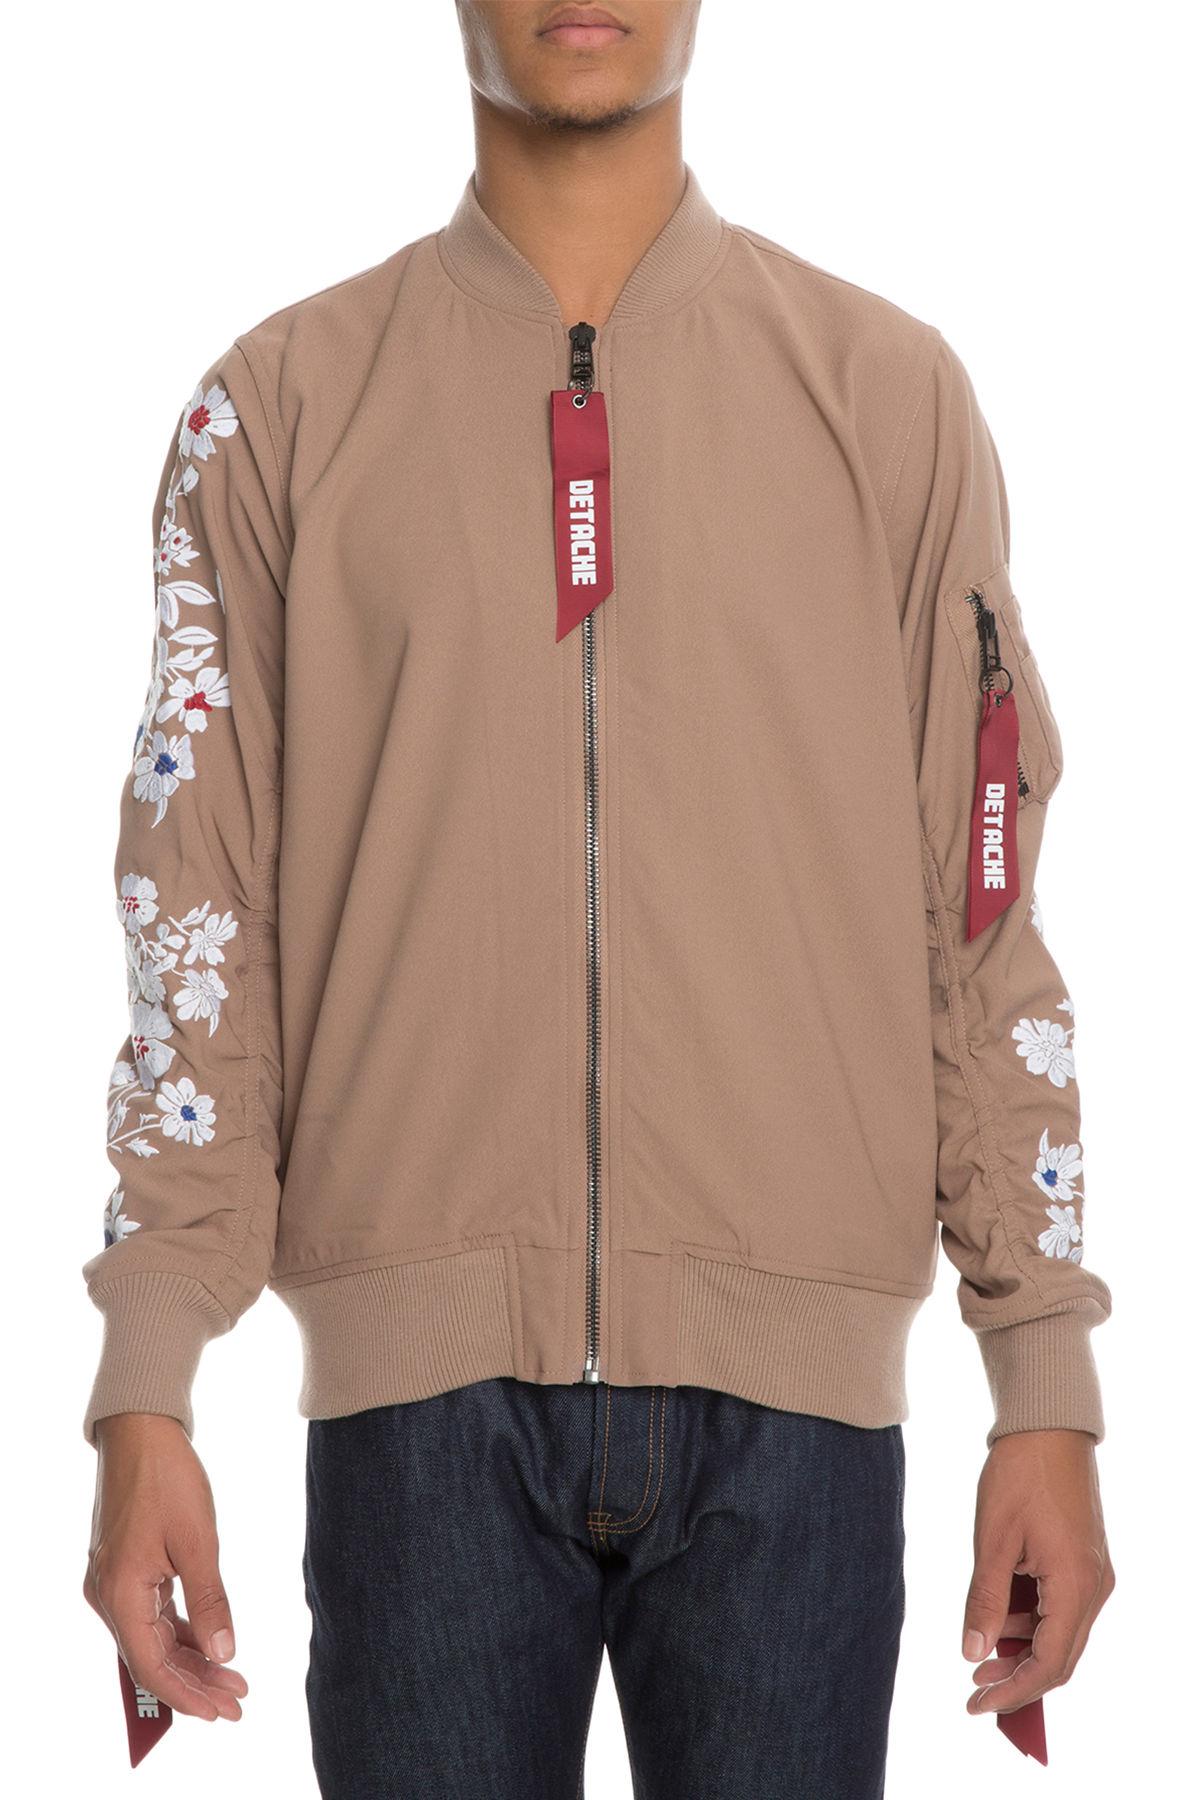 Image of The Cria Floral Bomber Jacket in Khaki Creme